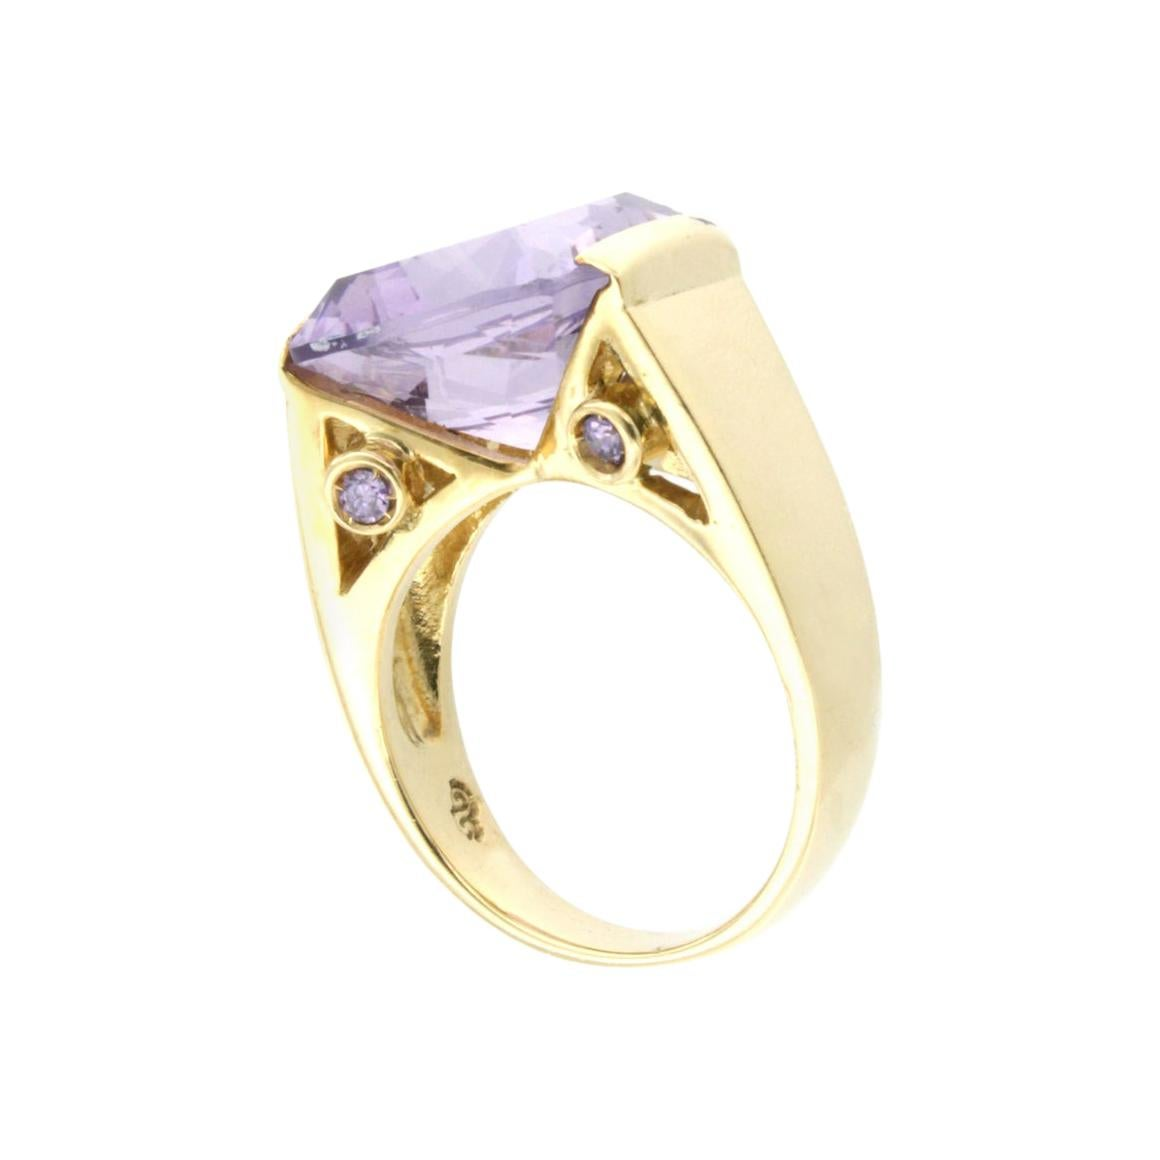 18k Yellow Gold With Amethyst Ring